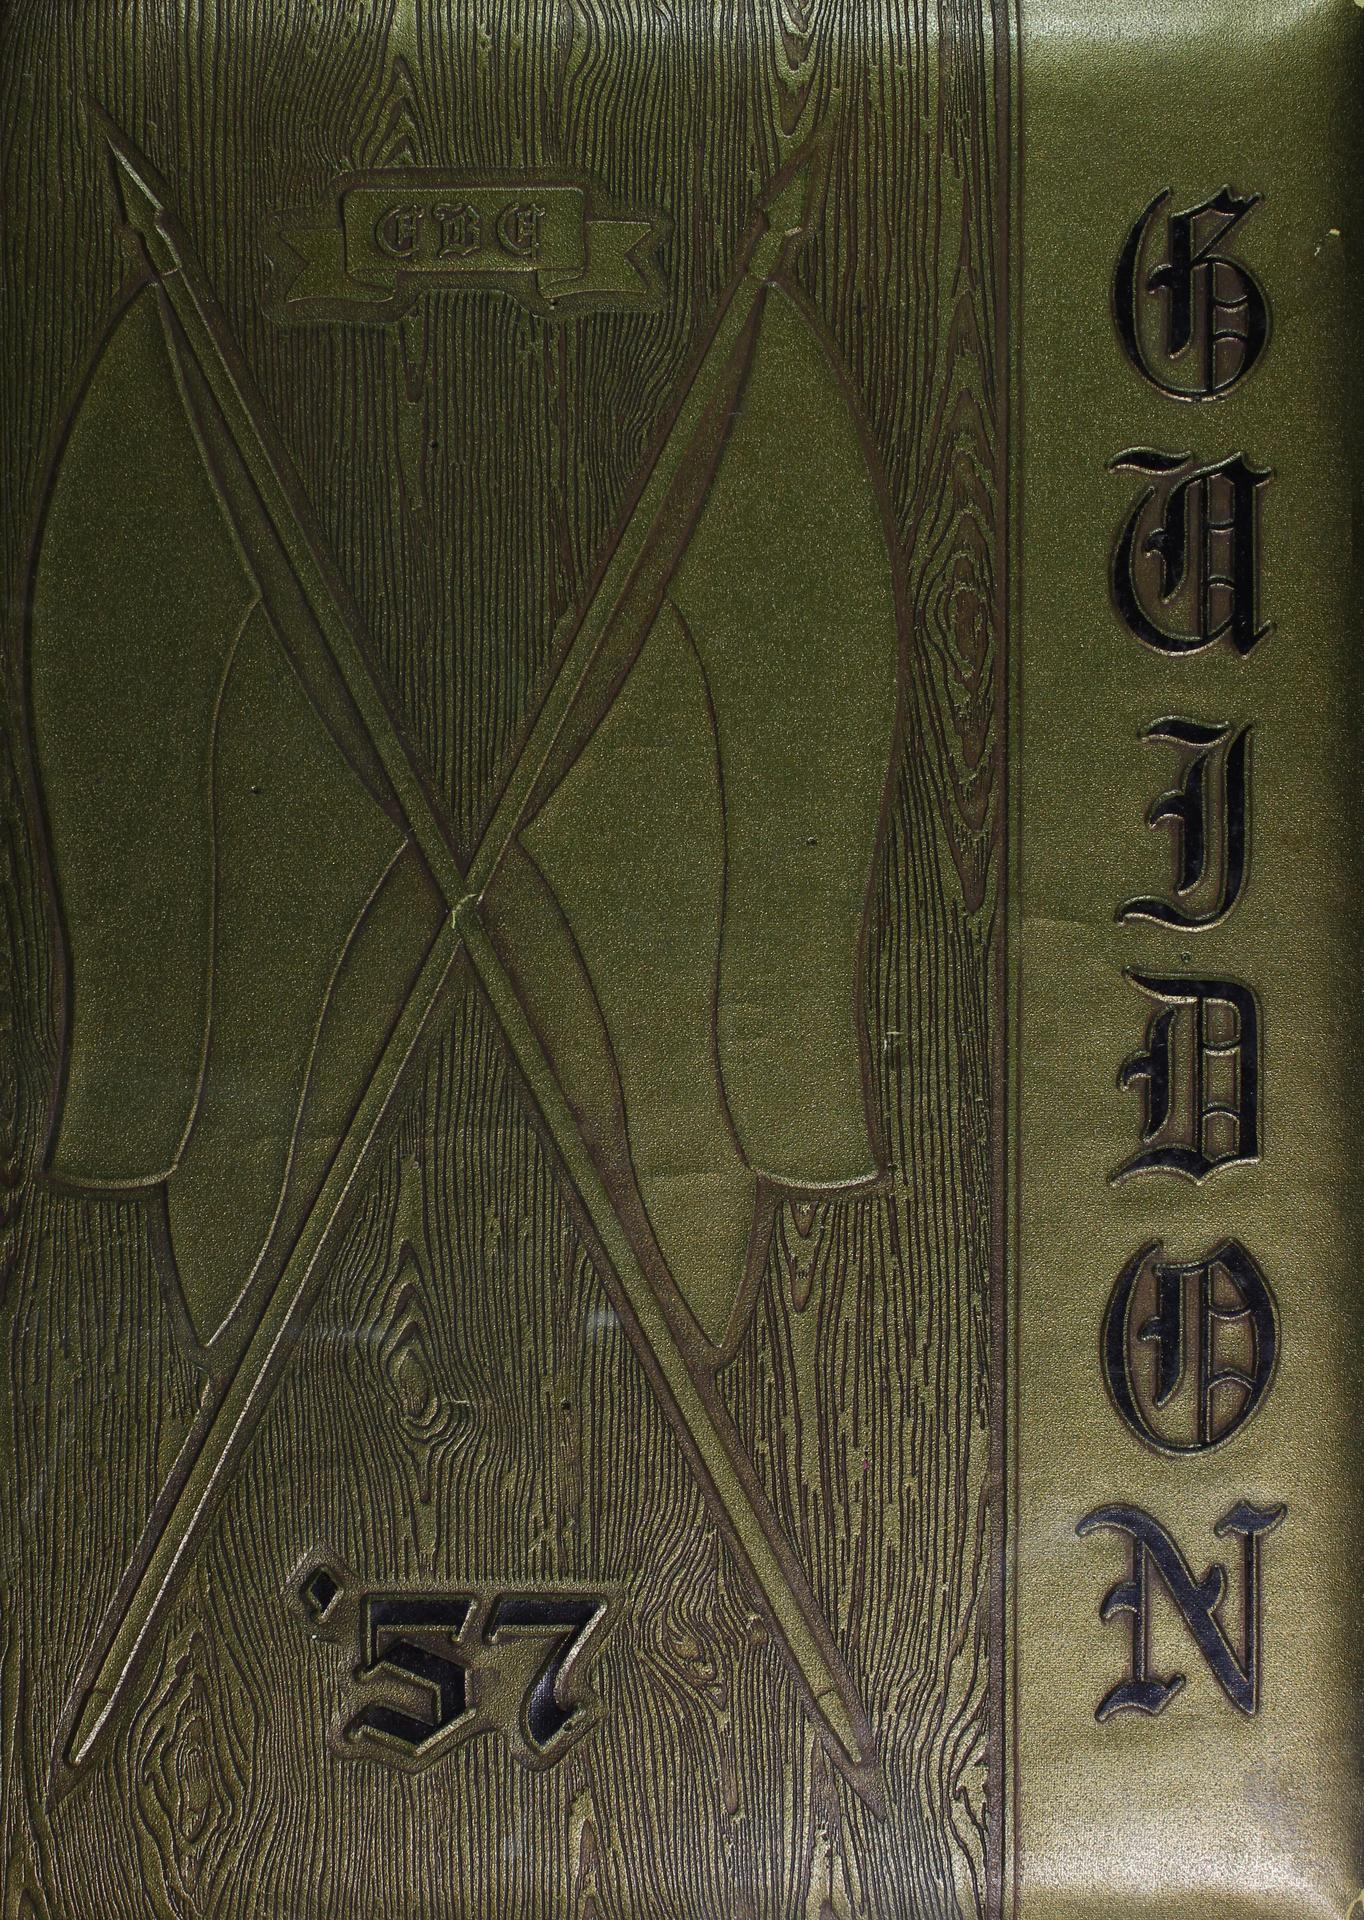 1957 CBC Yearbook